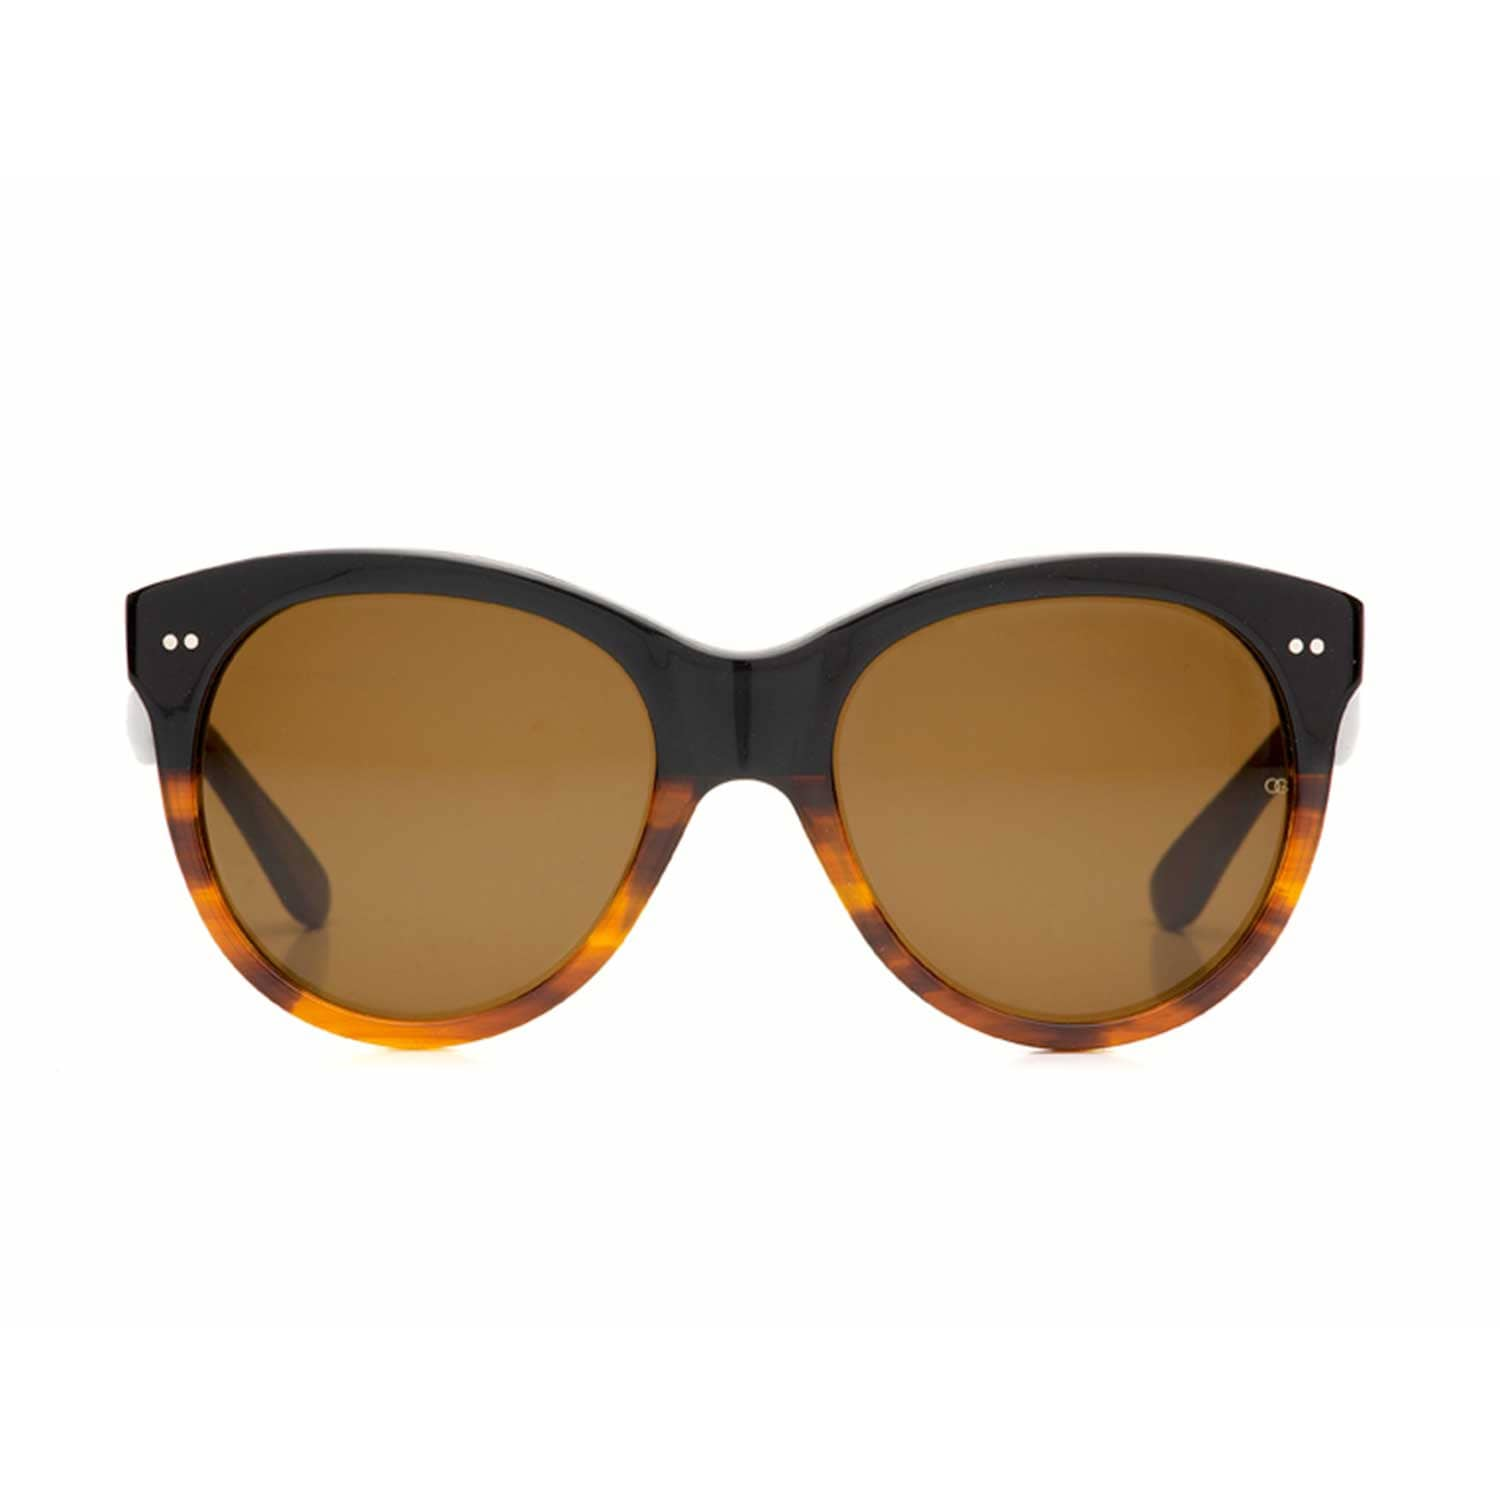 7c4e334375da Manhattan 1960 Caramel Split | Oliver Goldsmith Sunglasses | Wolf ...